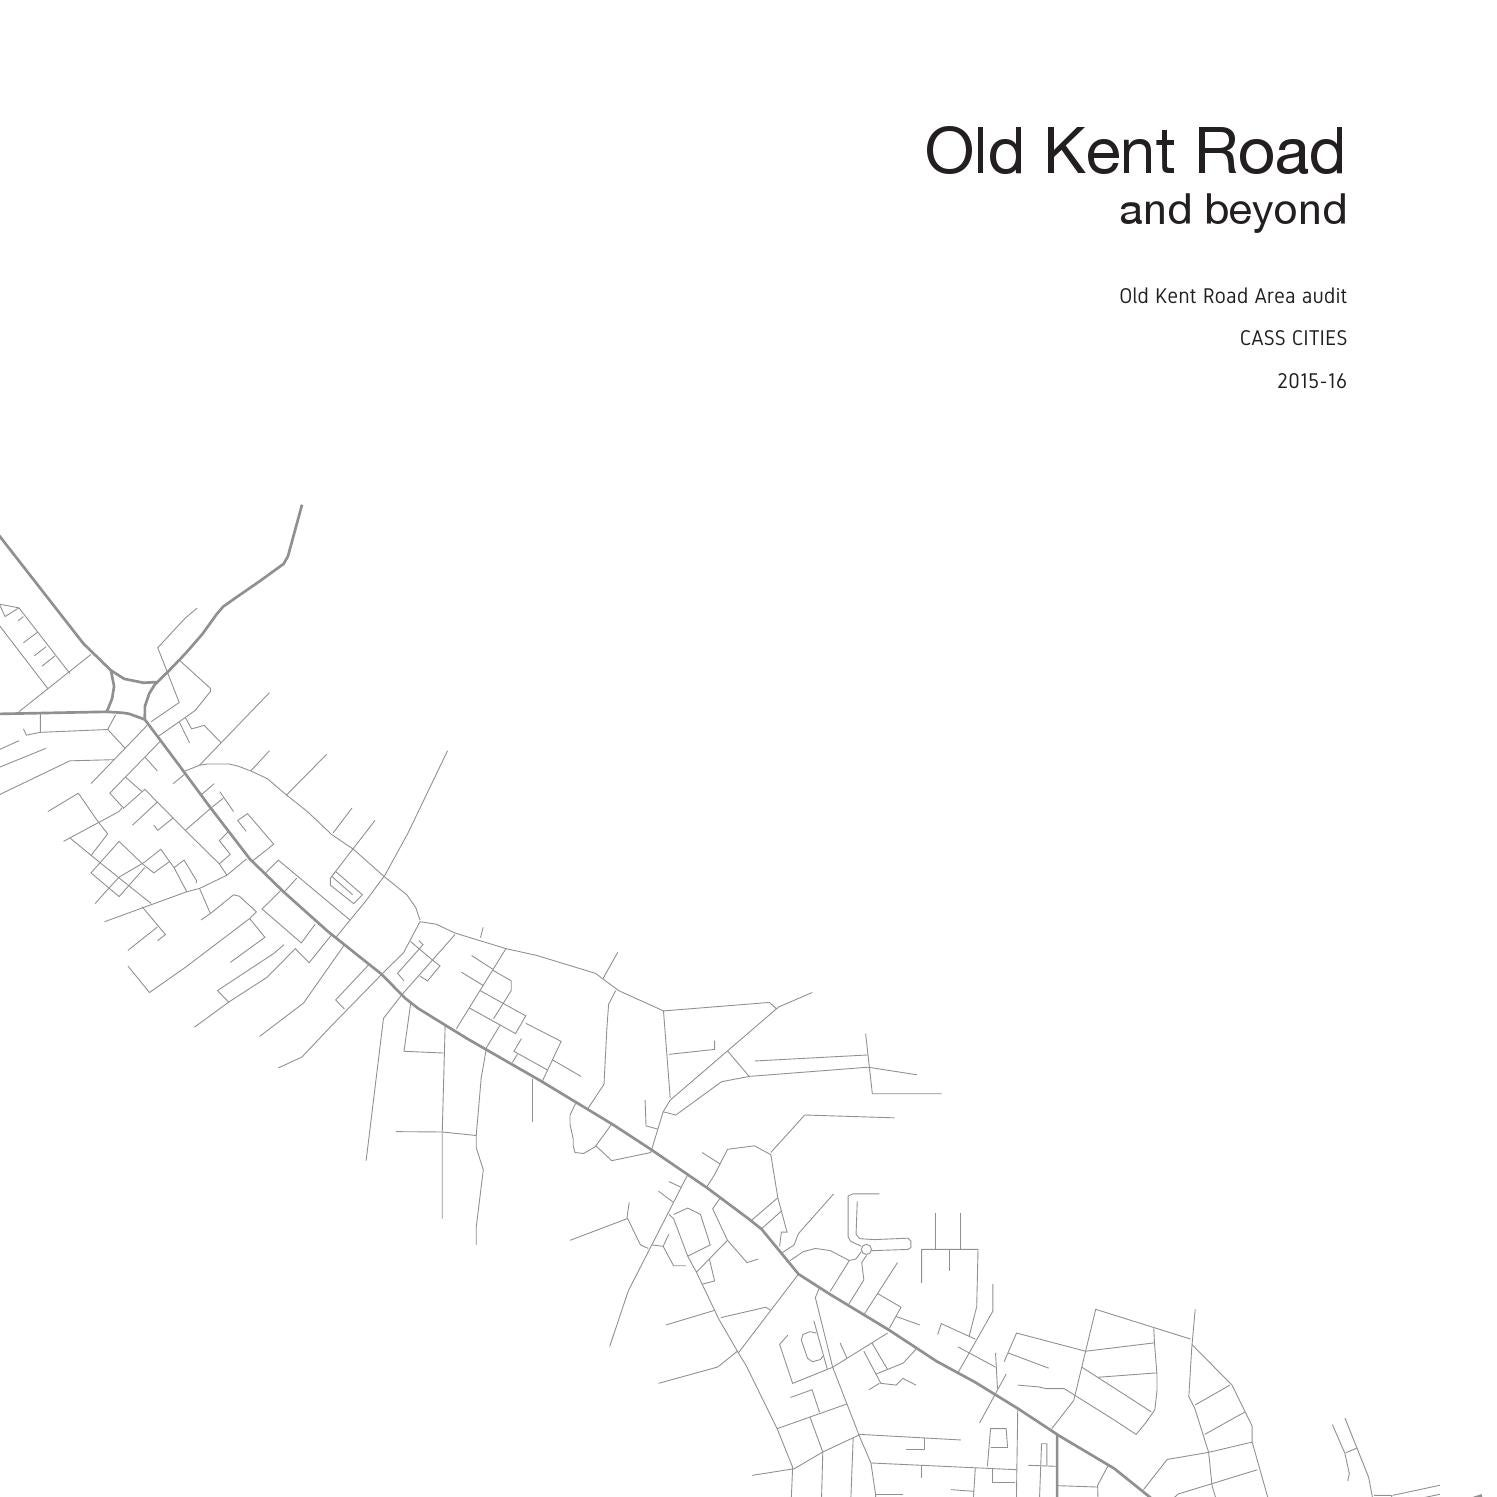 Old Kent Road and beyond by Cass Cities issuu